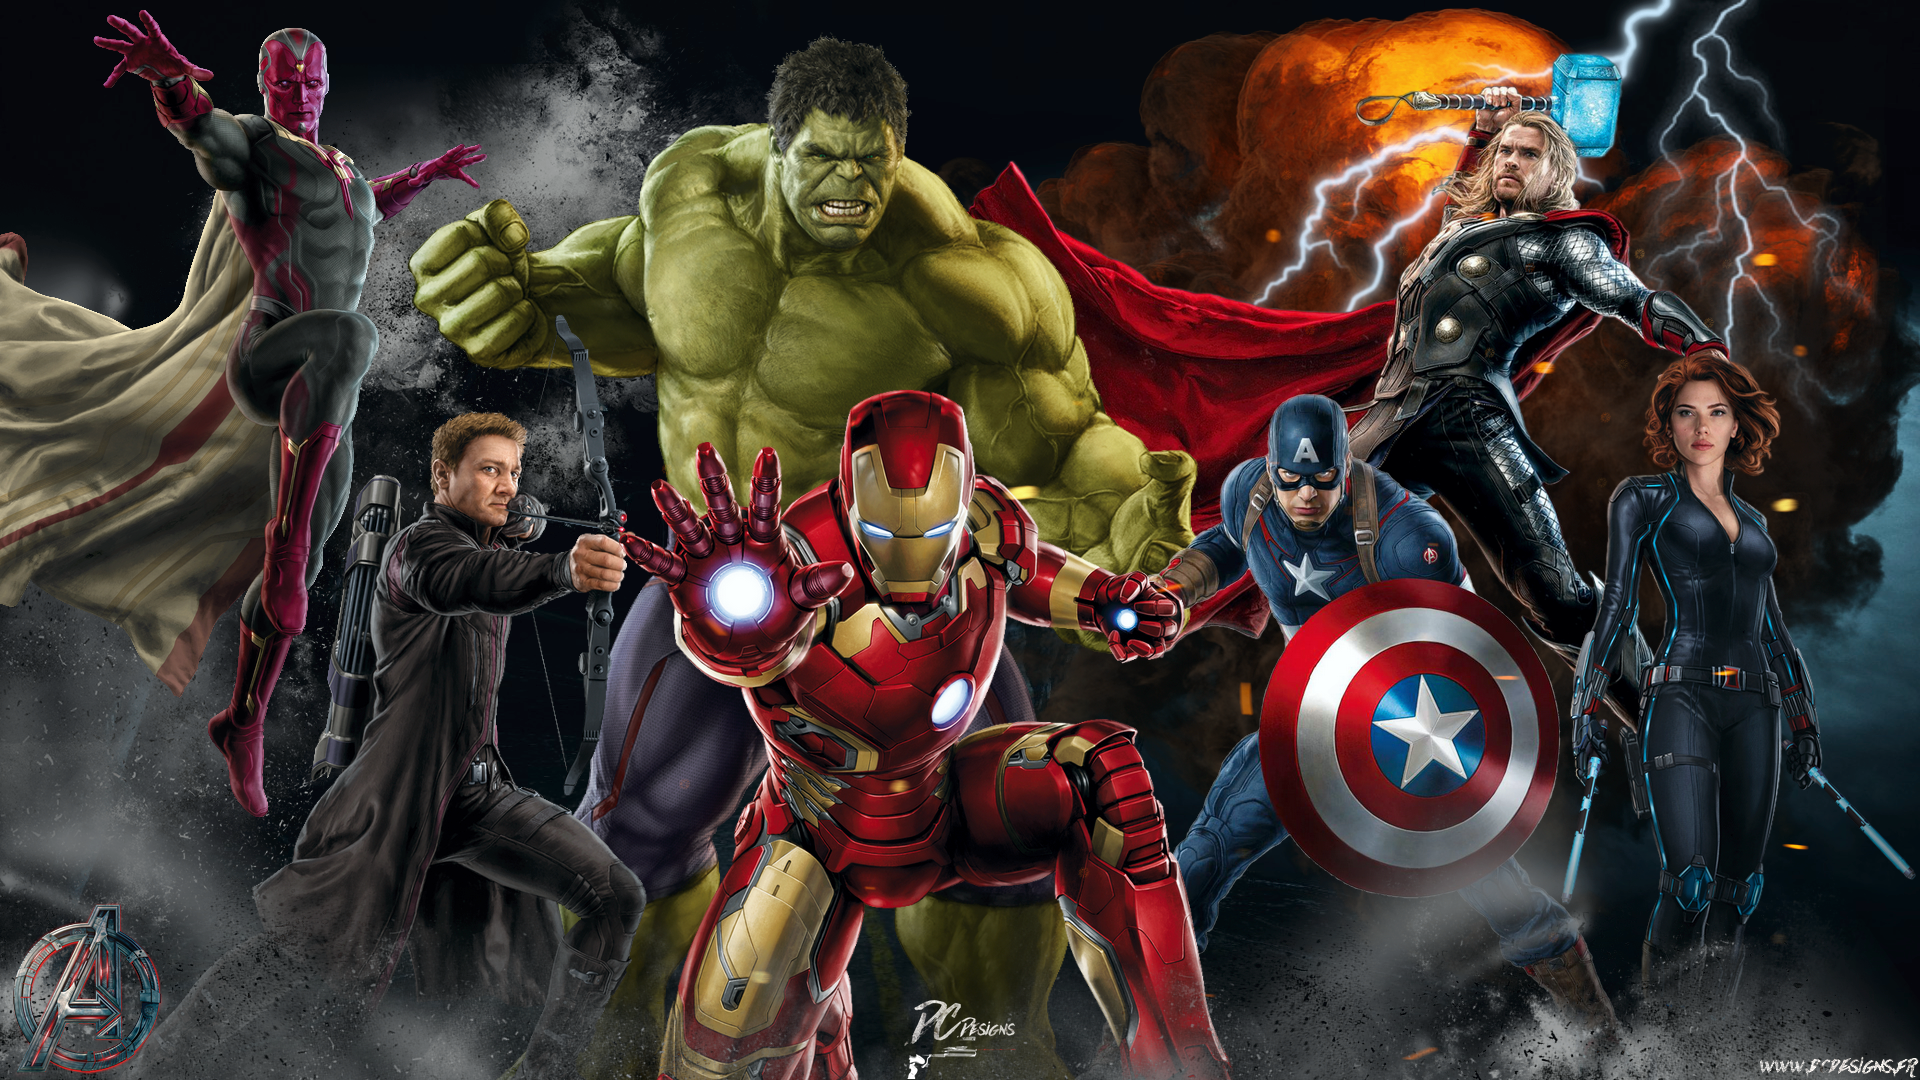 800 The Avengers Hd Wallpapers Background Images Wallpaper Abyss